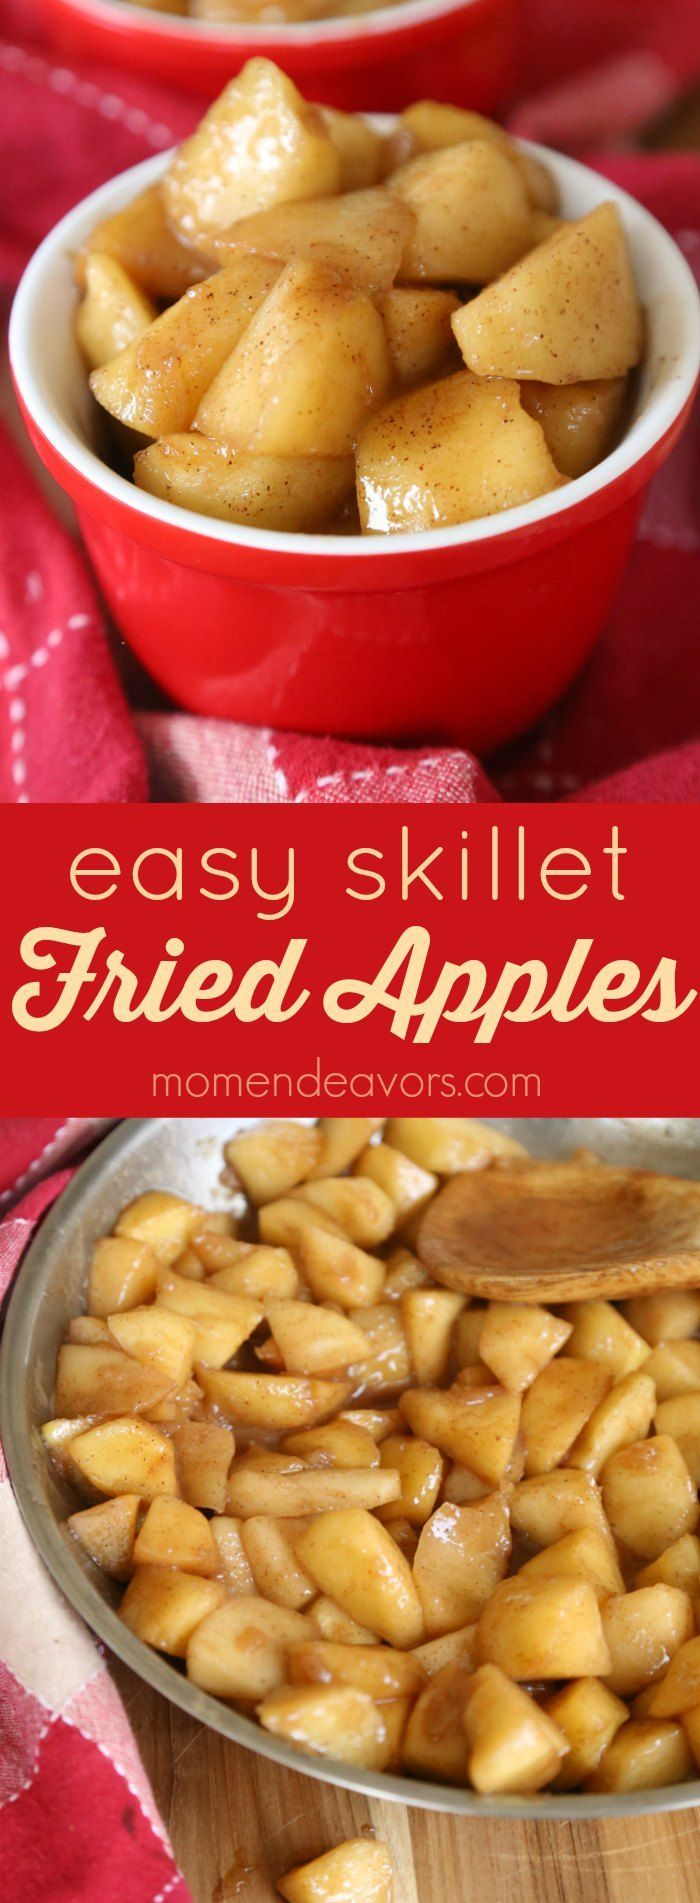 Easy Skillet Fried Apples -fried apples make for a tasty dessert or sweet side dish that the whole family will love. Sponsored by REVEREWare. (Apple Recipes)